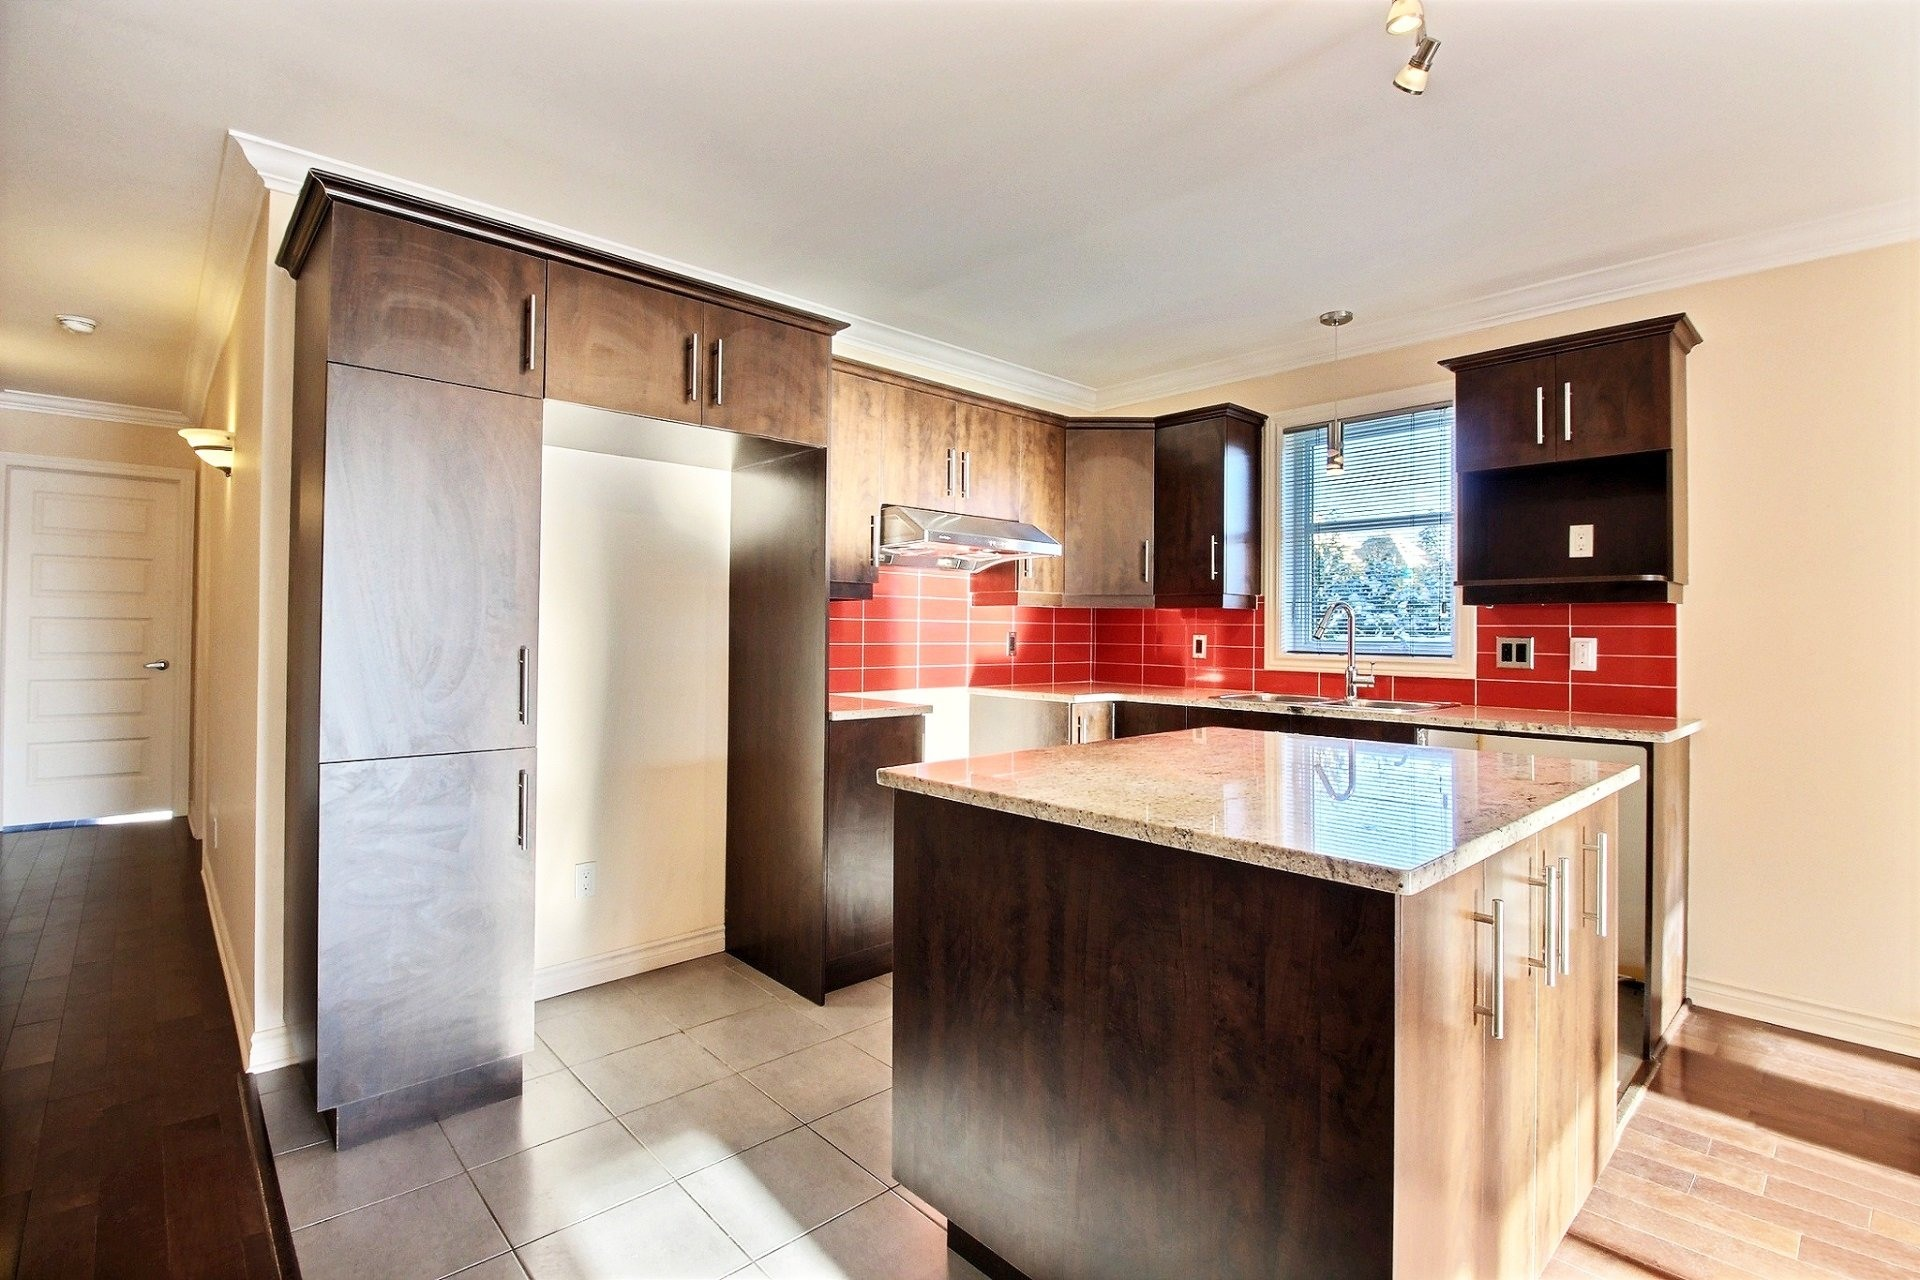 image 8 - Apartment For sale Laval Duvernay  - 7 rooms